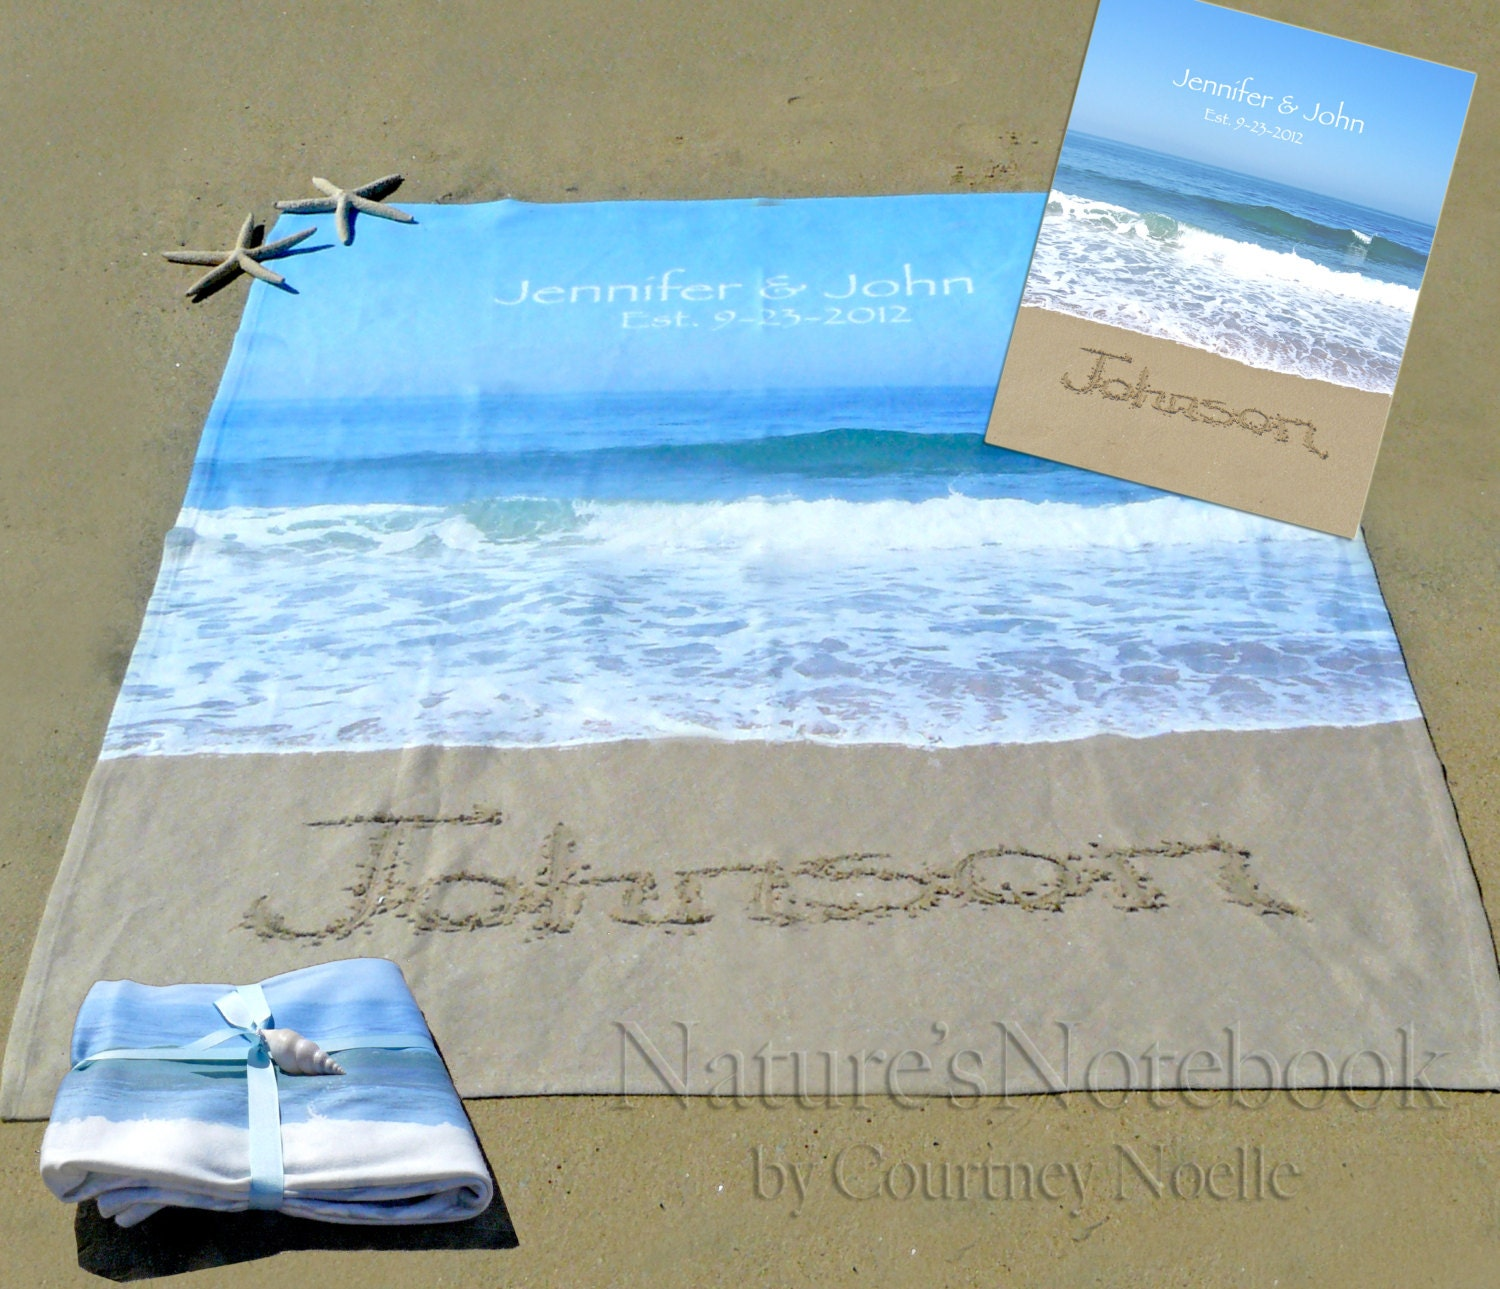 Personalized Beach Wedding Gifts: Unique Wedding Gift Personalized Blanket With Bride And